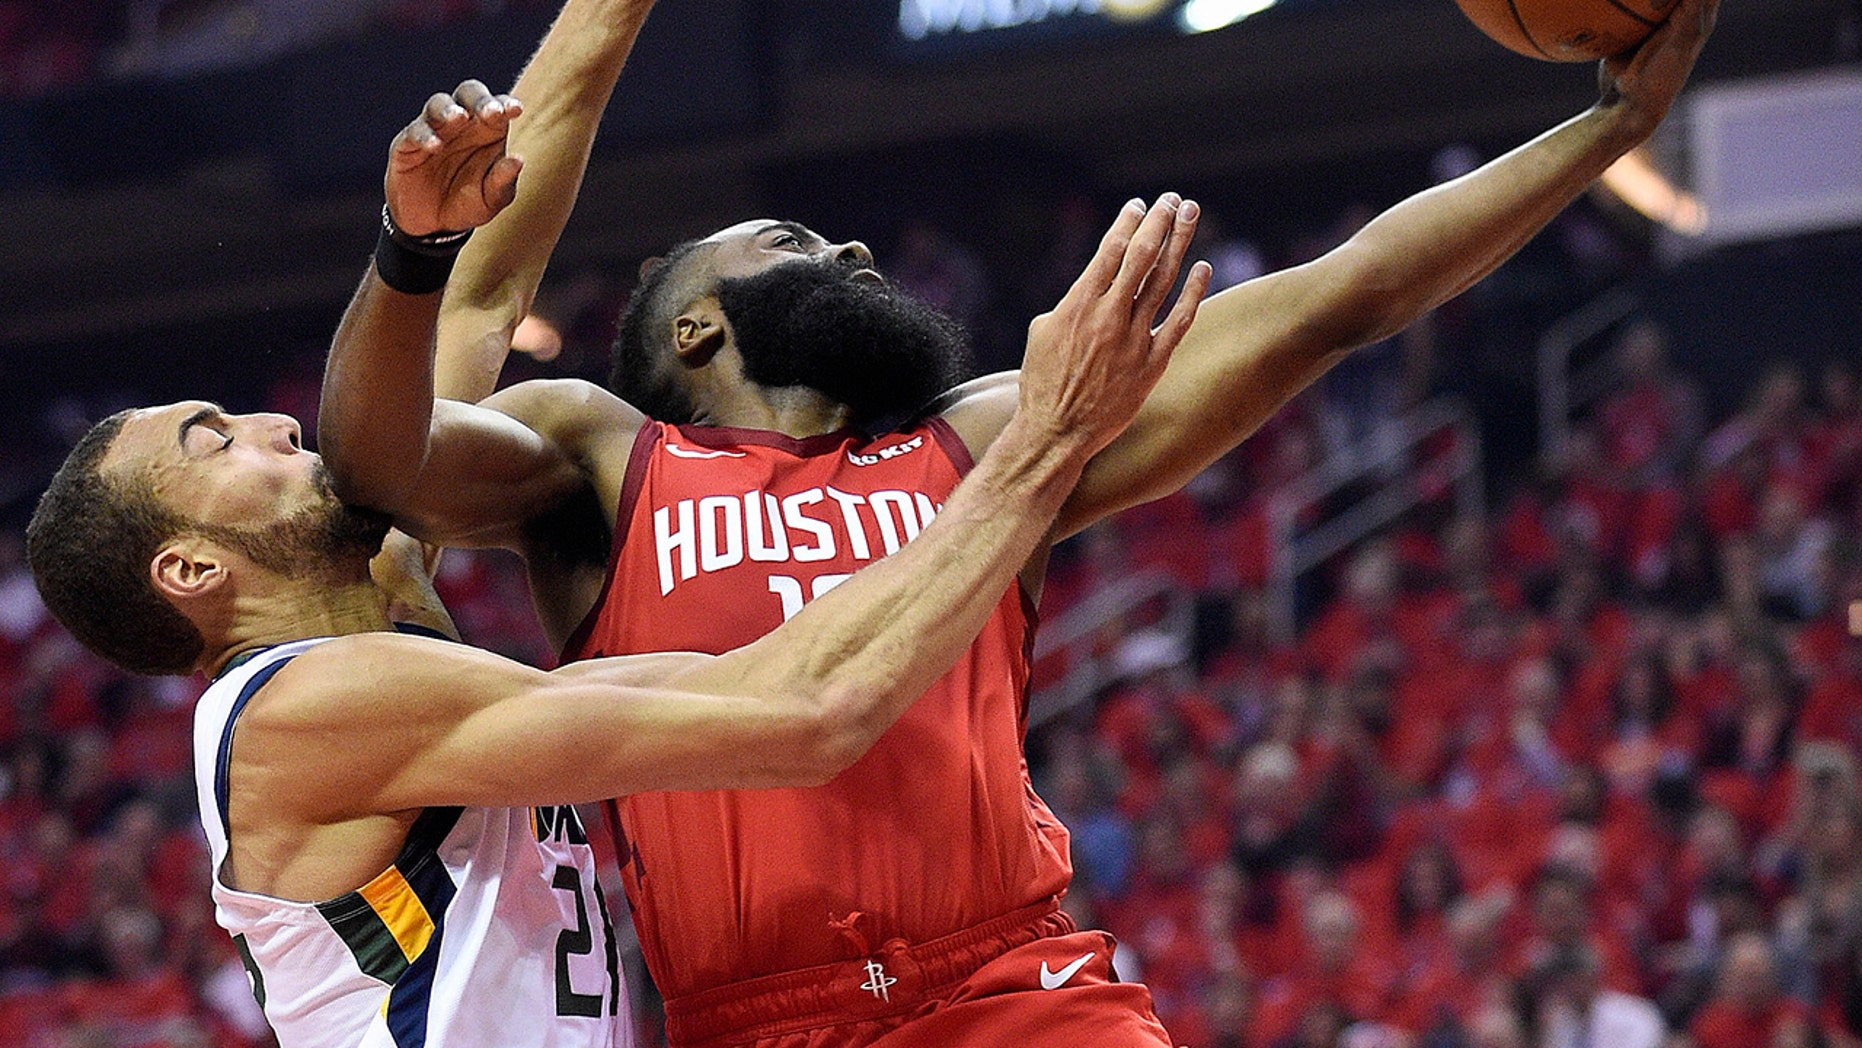 Houston Rockets guard James Harden, right, drives to the basket as Utah Jazz center Rudy Gobert defends during the first half of Game 1 of an NBA basketball first-round playoff series, Sunday, April 14, 2019, in Houston. (AP Photo/Eric Christian Smith)